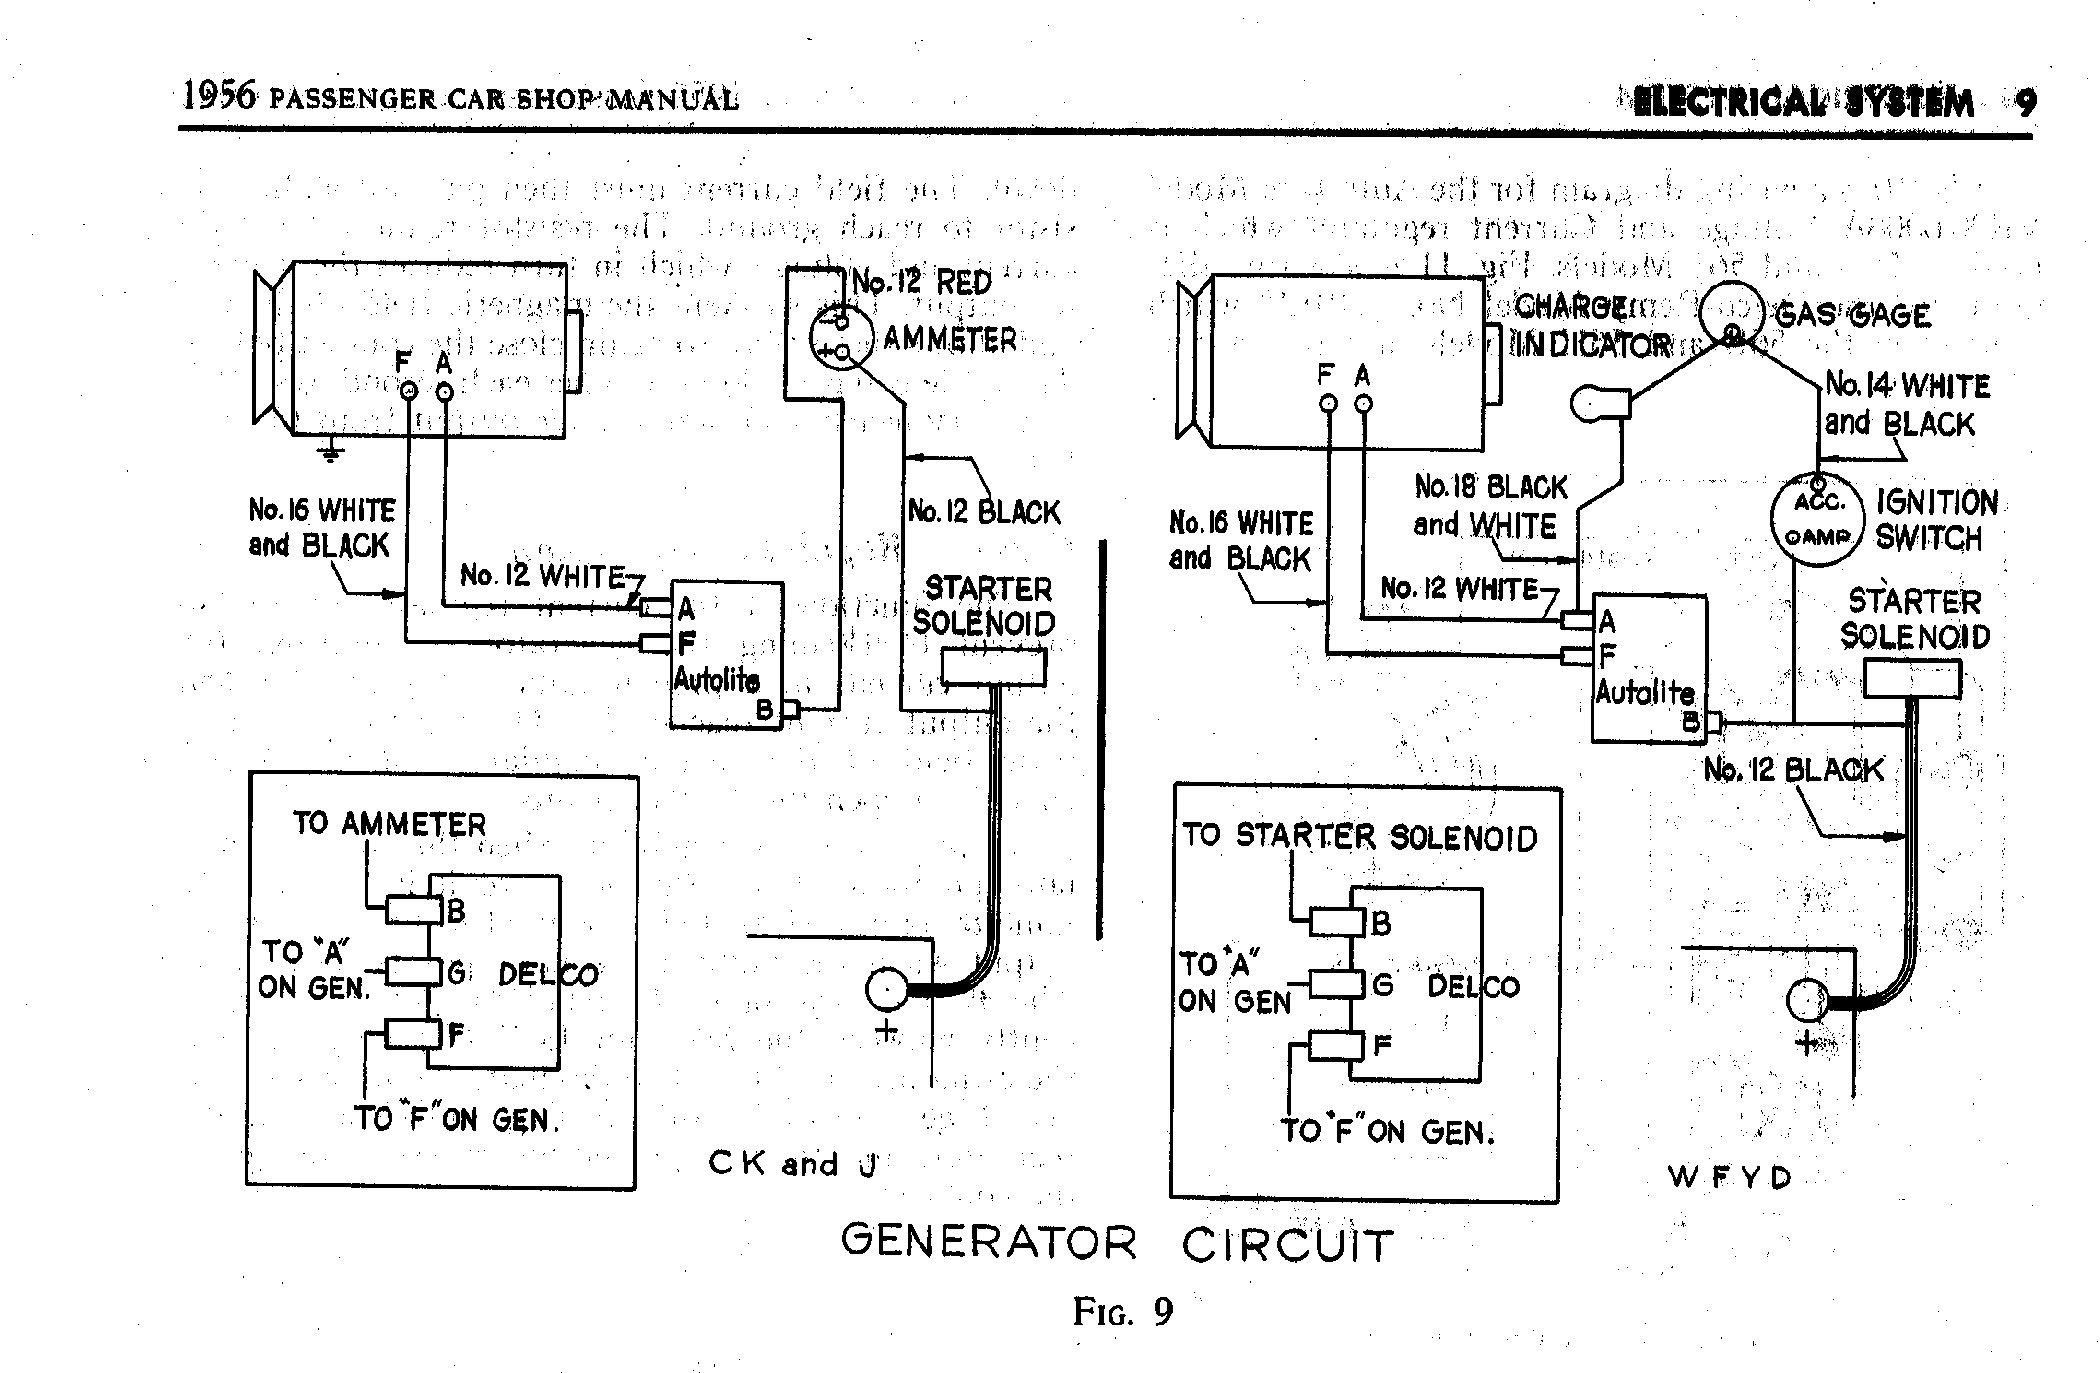 New Wiring Diagram Hitachi Starter Generator Diagram Diagramsample Diagramtemplate Wiringdiagram Diagramchart W Diagram Trailer Wiring Diagram Generation